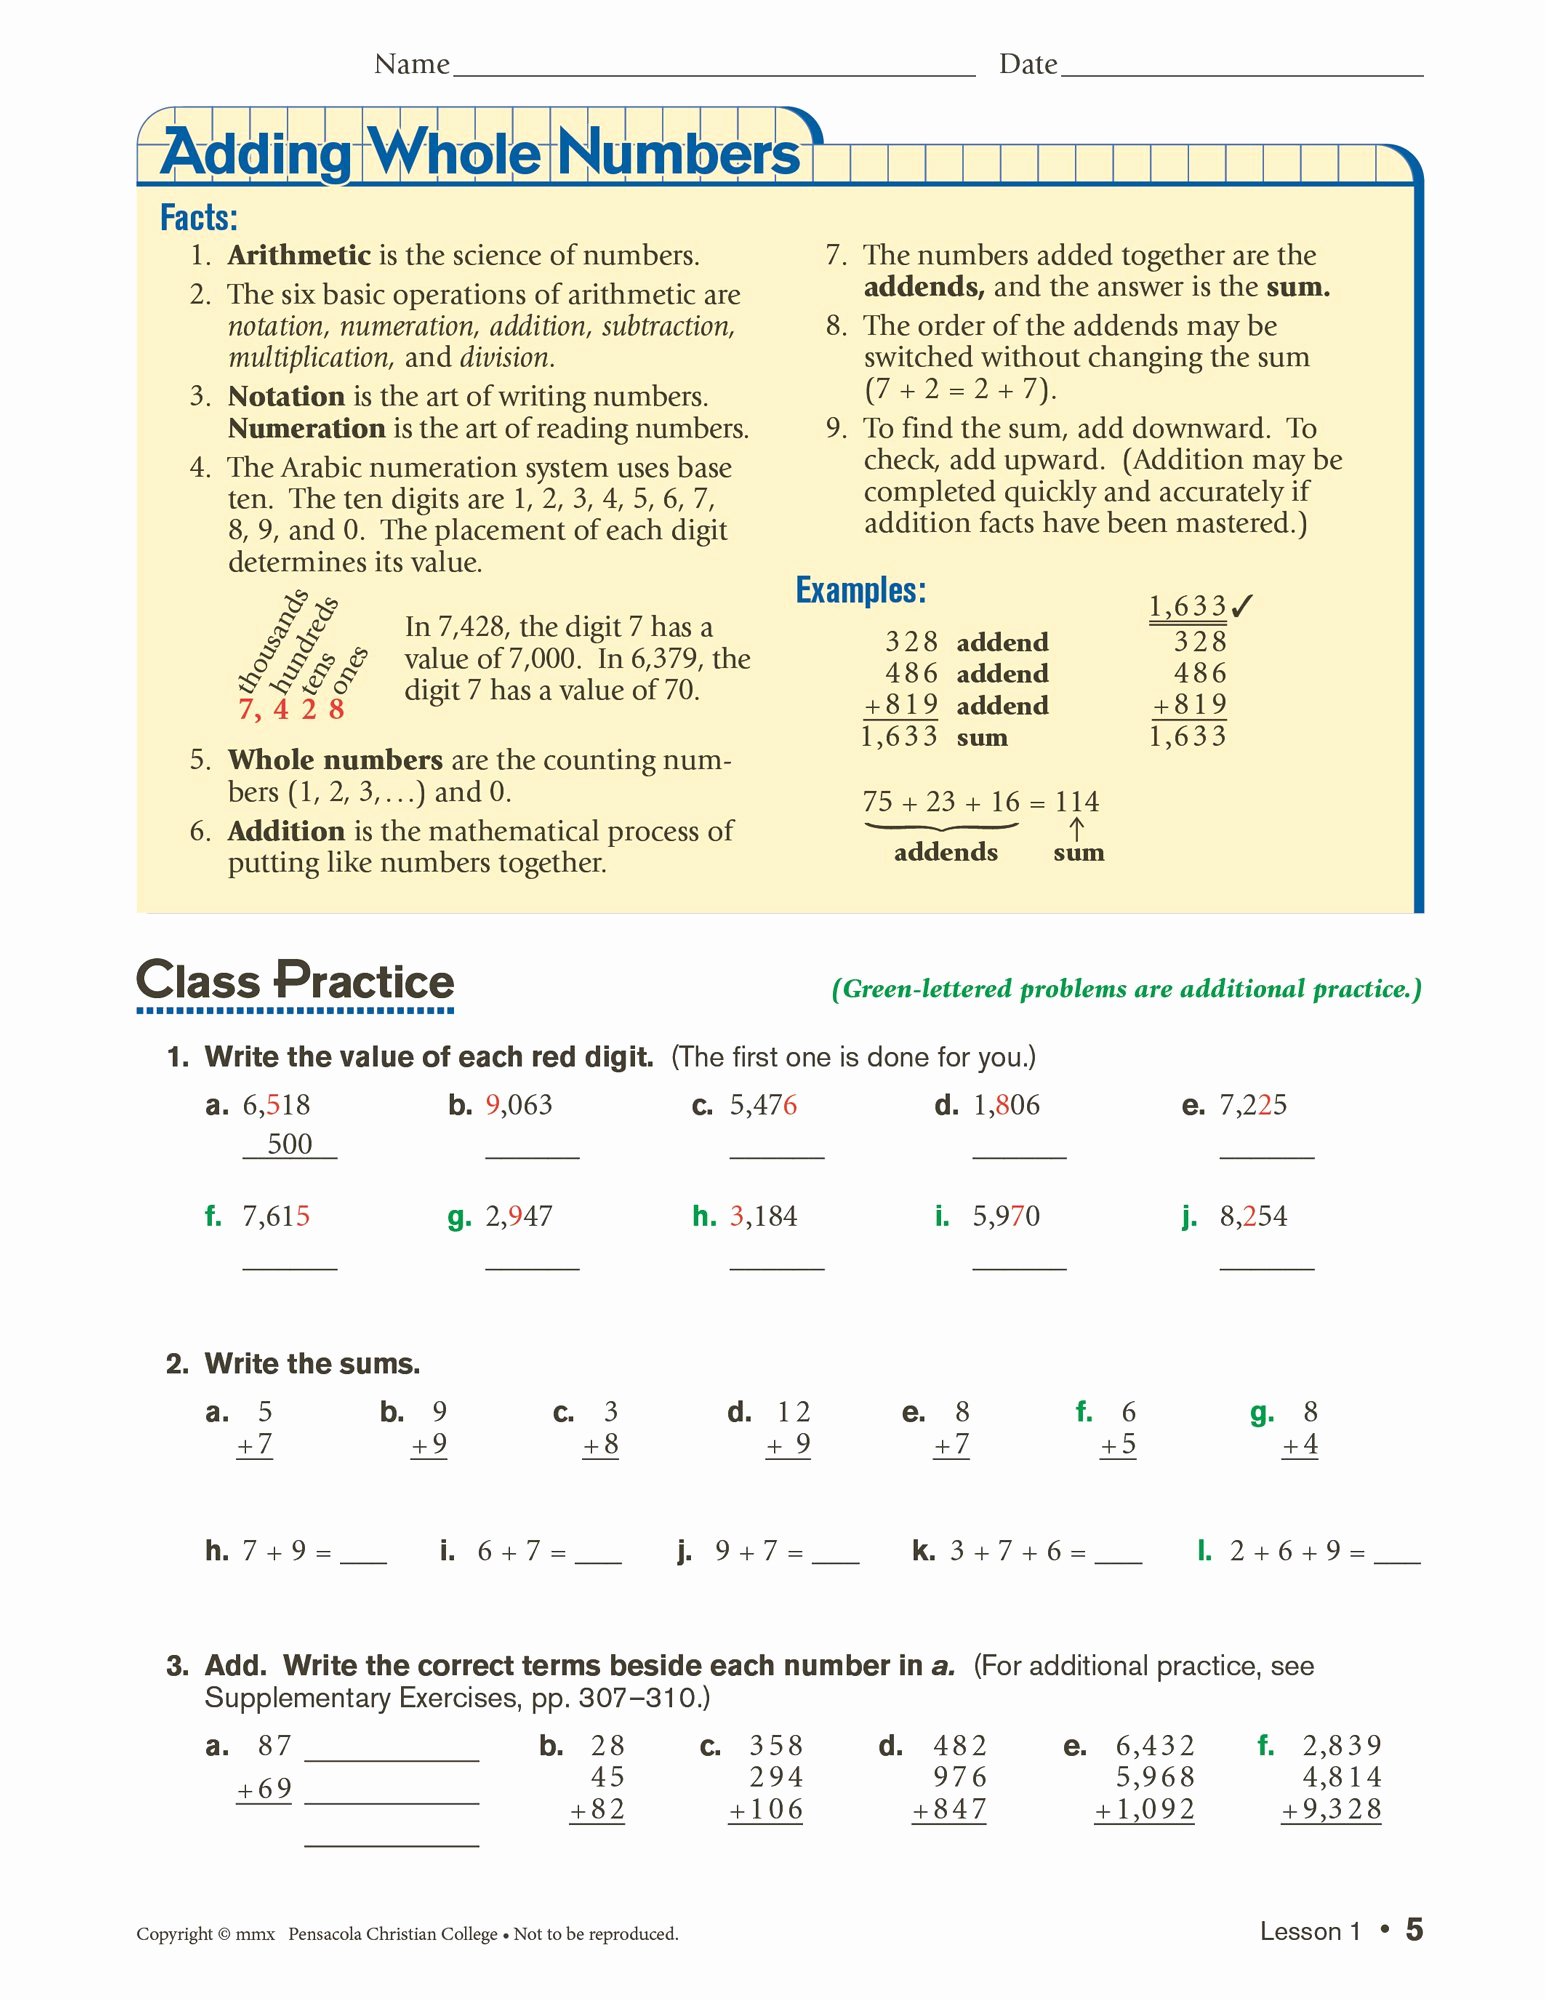 Free 6th Grade Science Worksheets Lovely Abeka 6th Grade Science